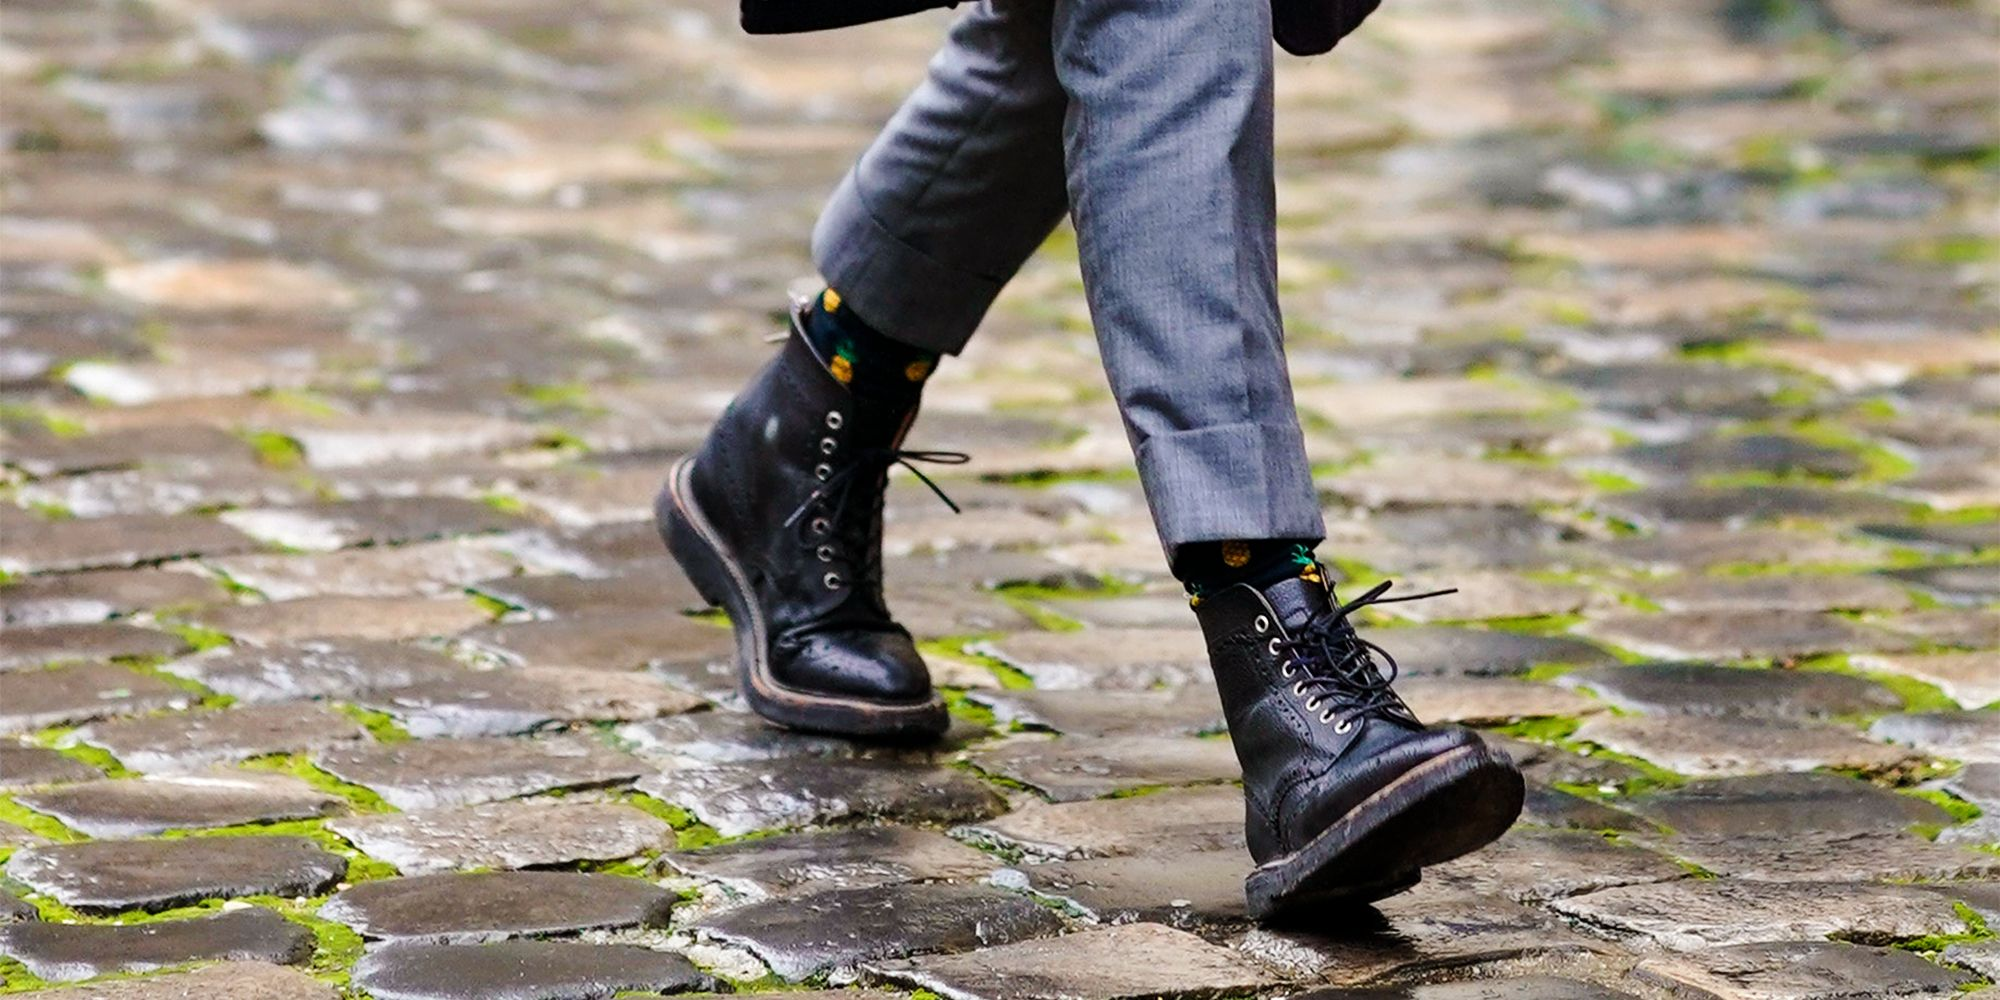 We Found the 17 Best Waterproof Shoes For Keeping Your Feet Dry